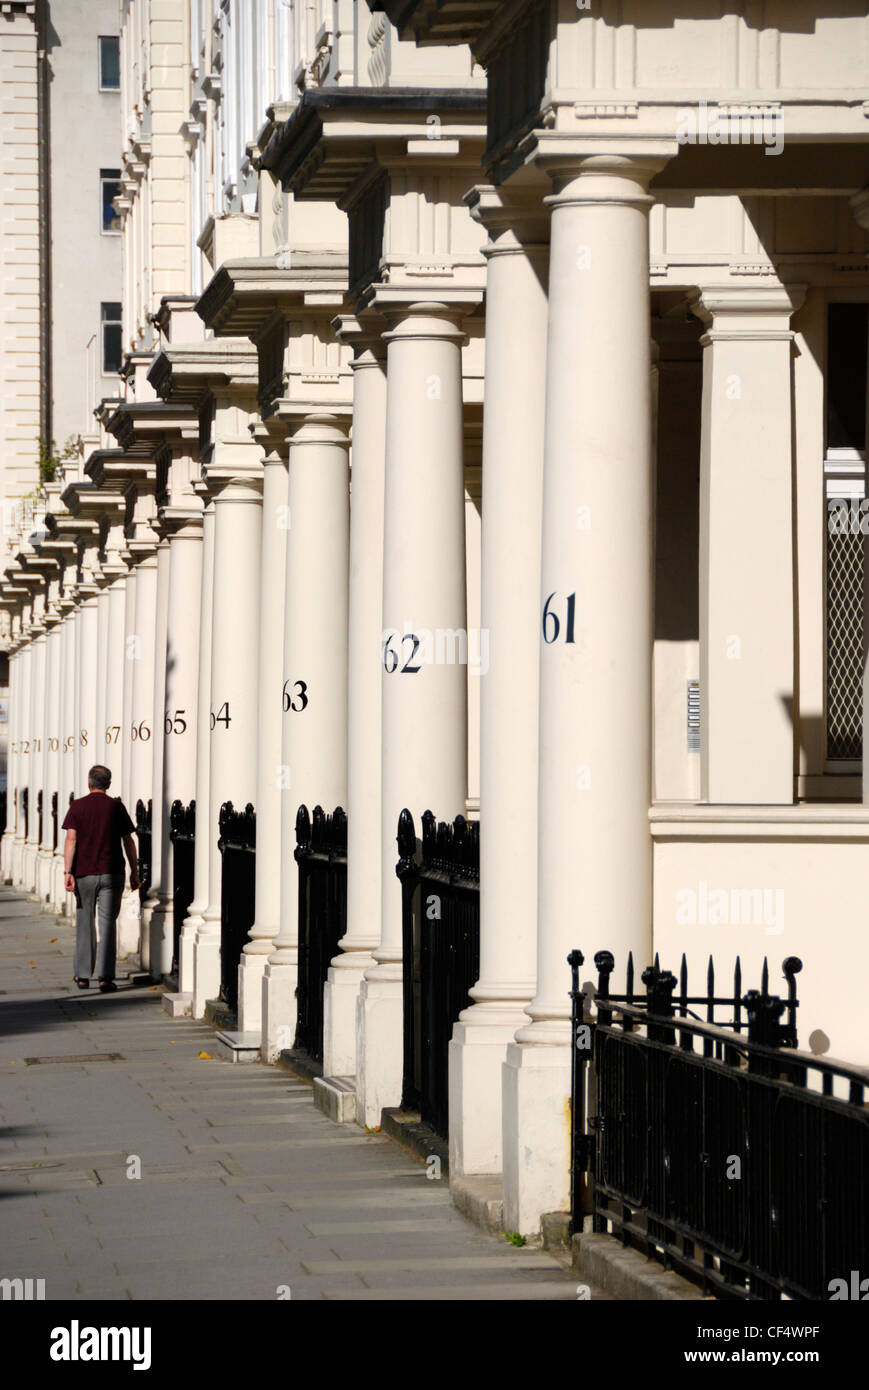 Numbered stone columns outside elegant Victorian terraced houses in Eccleston Square. - Stock Image